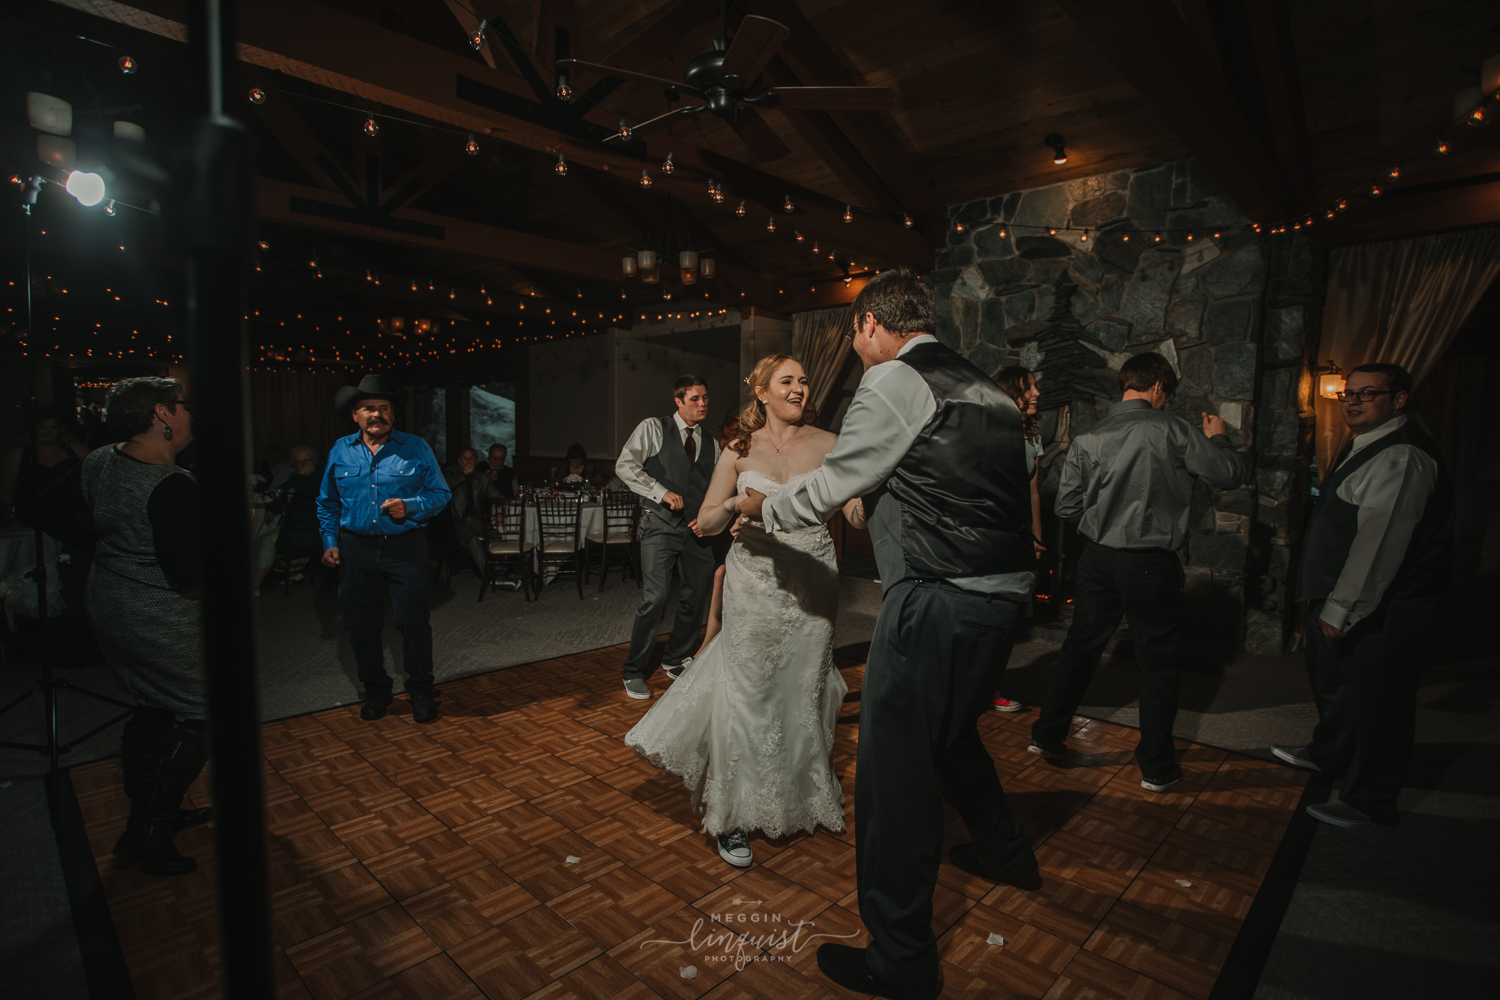 music-themed-winter-wedding-tannenbaum-event-center-reno-lake-tahoe-wedding-photographer-79.jpg